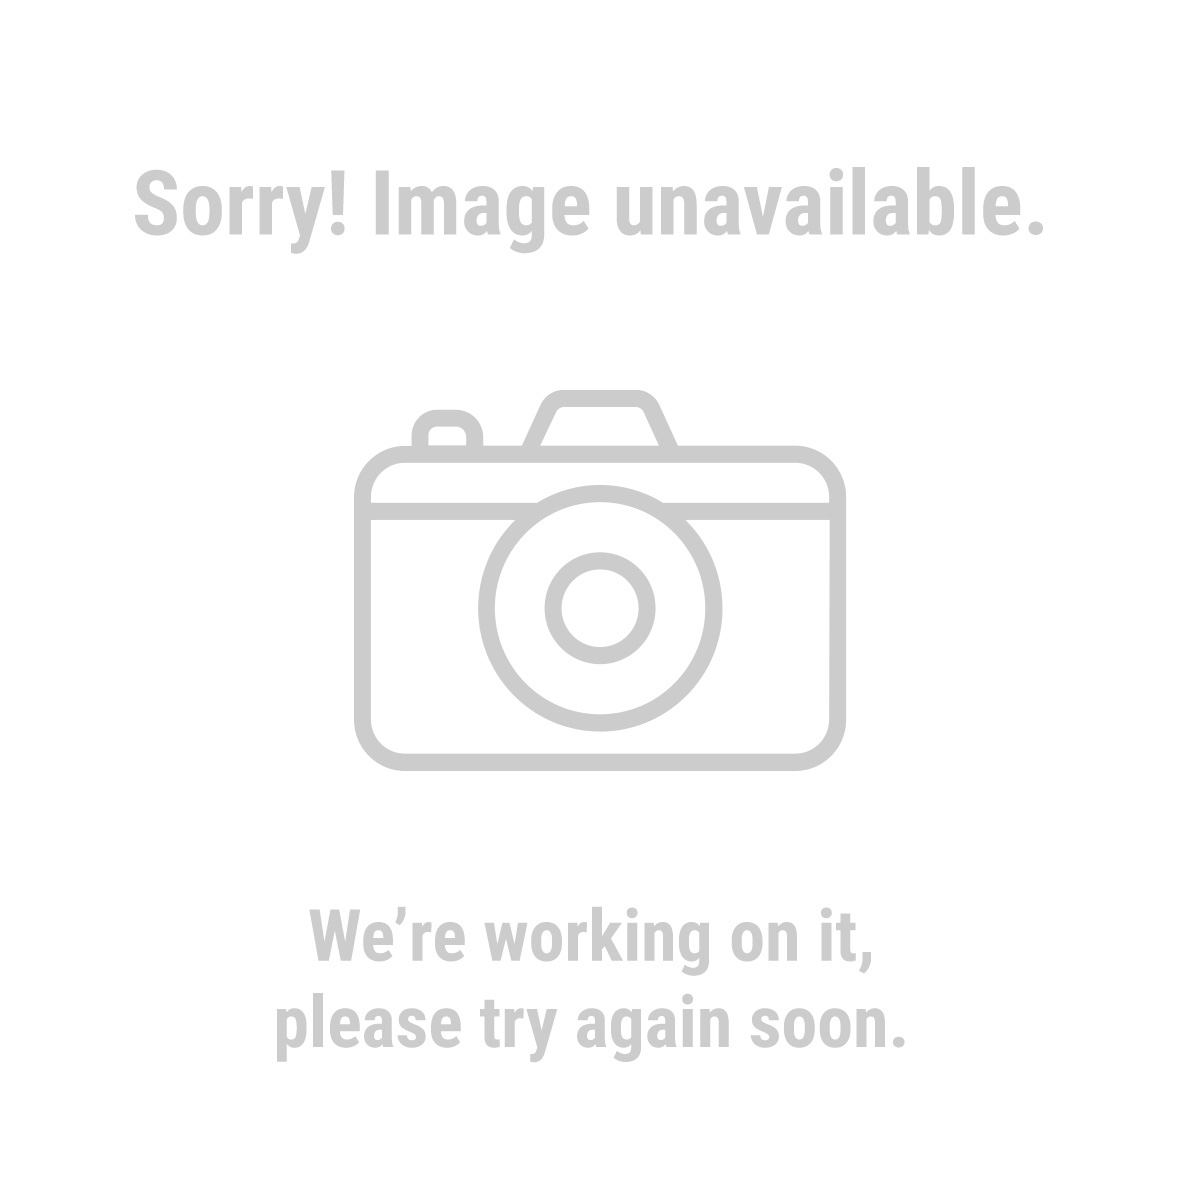 KIDDE 62634 2 lb. Fire Extinguisher - Silver